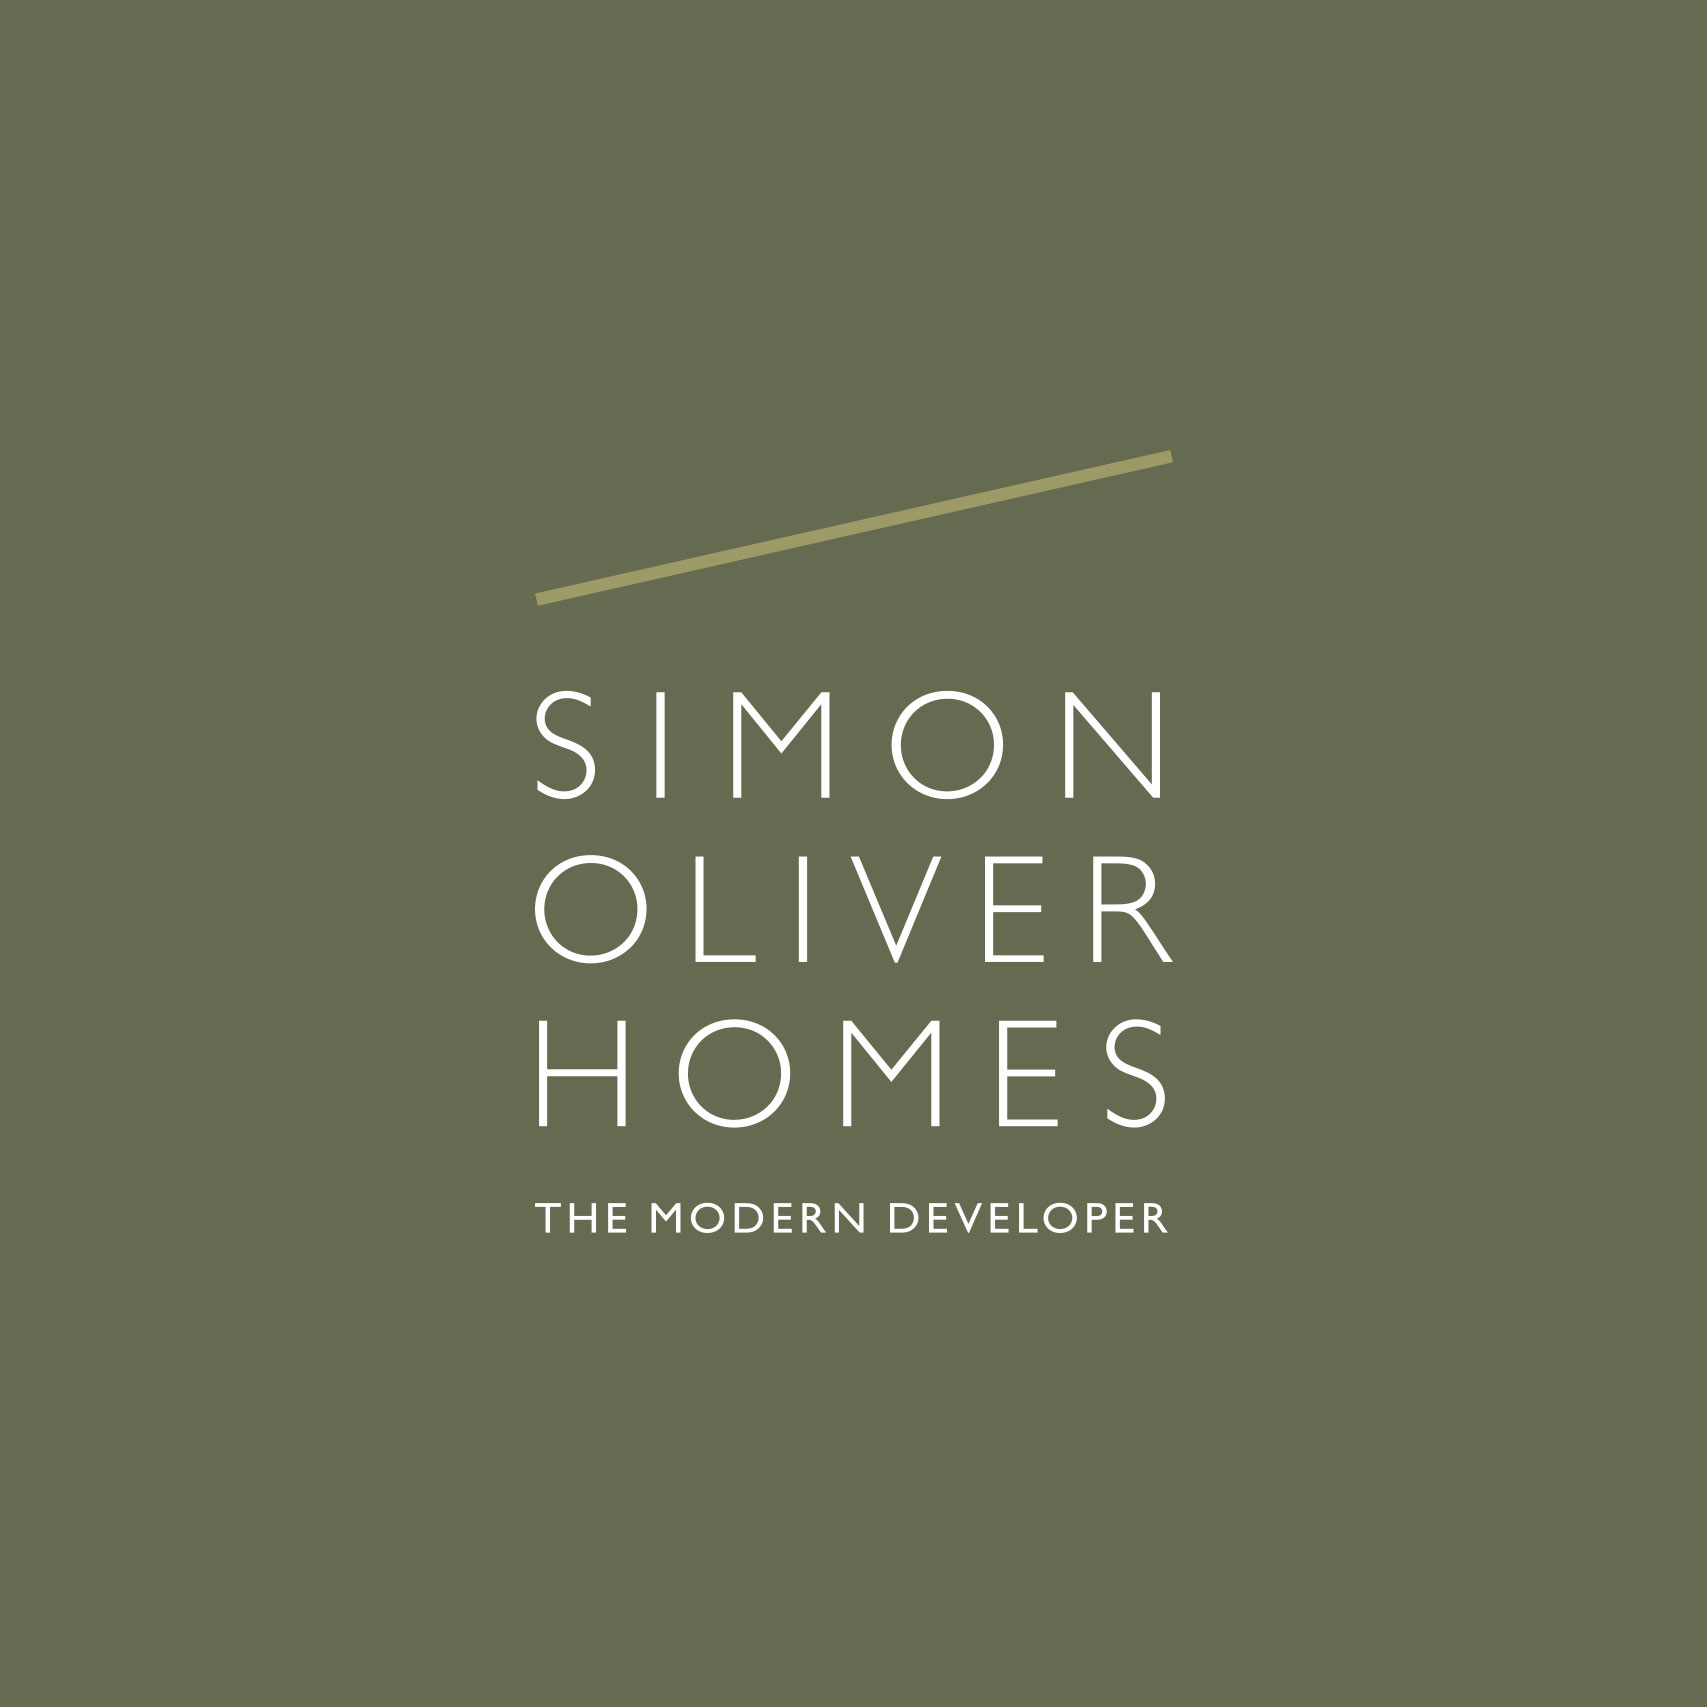 Simple clean logo design for Simon Oliver Homes London